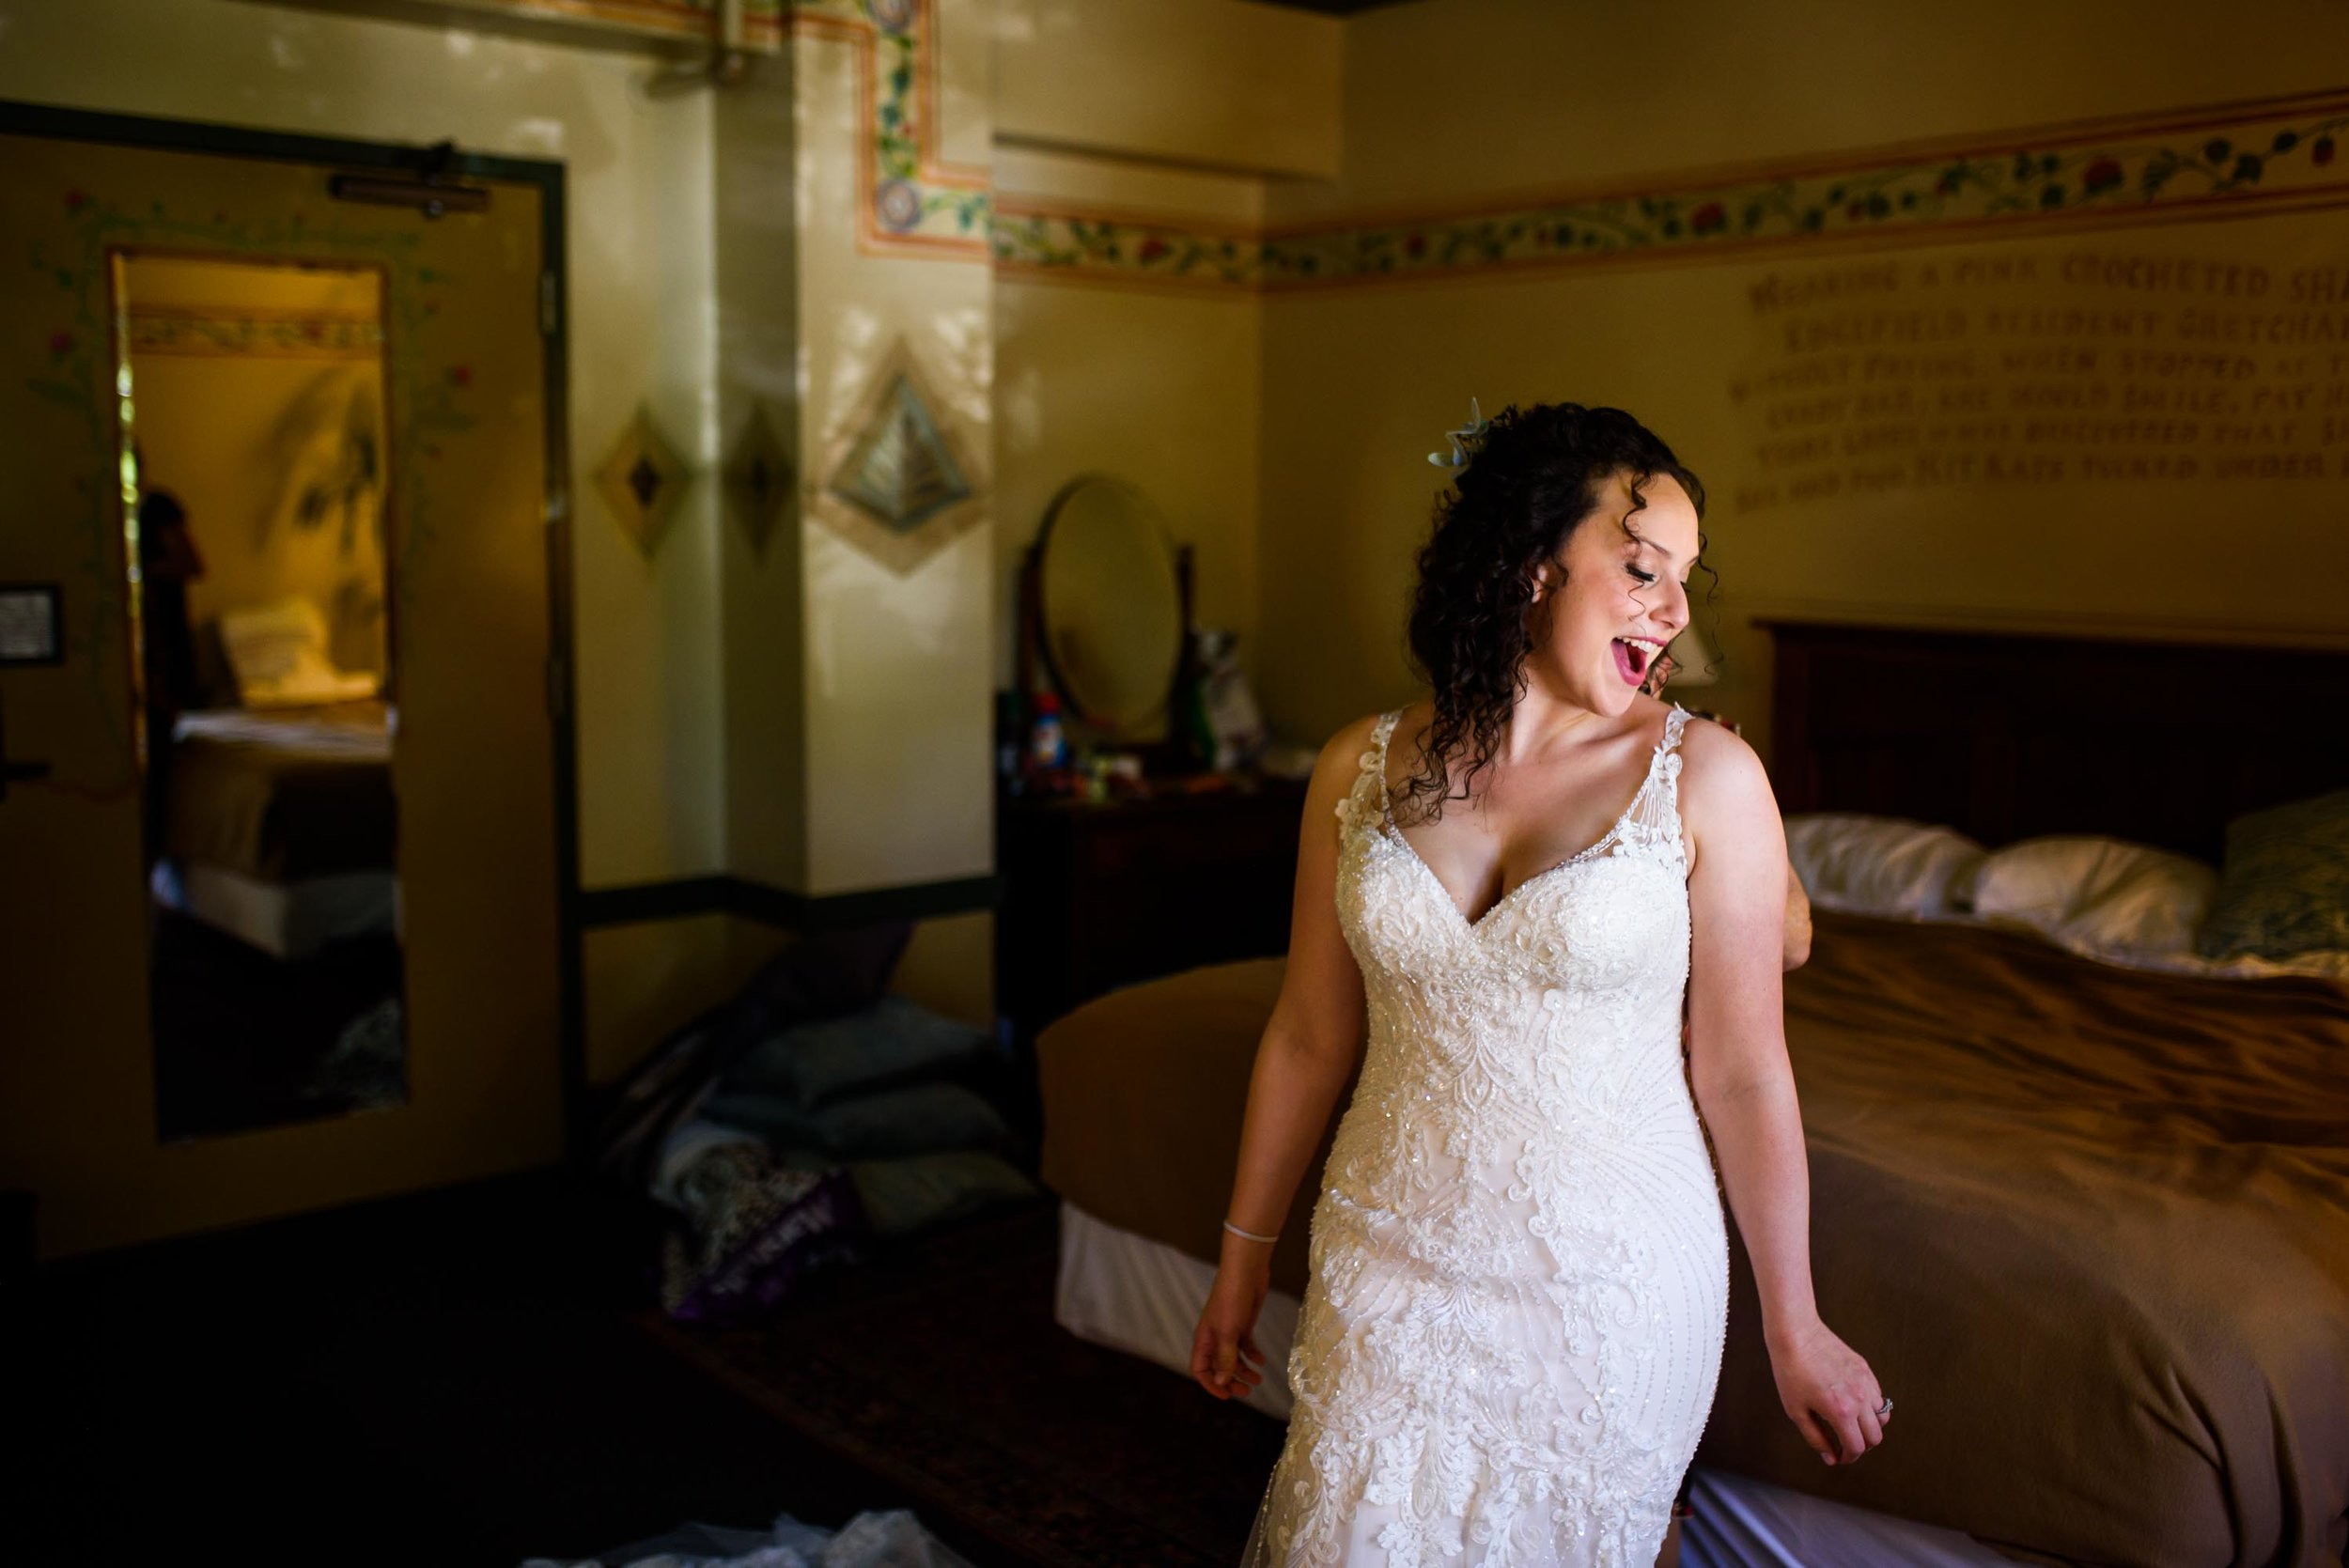 edgefield wedding photos24.jpg